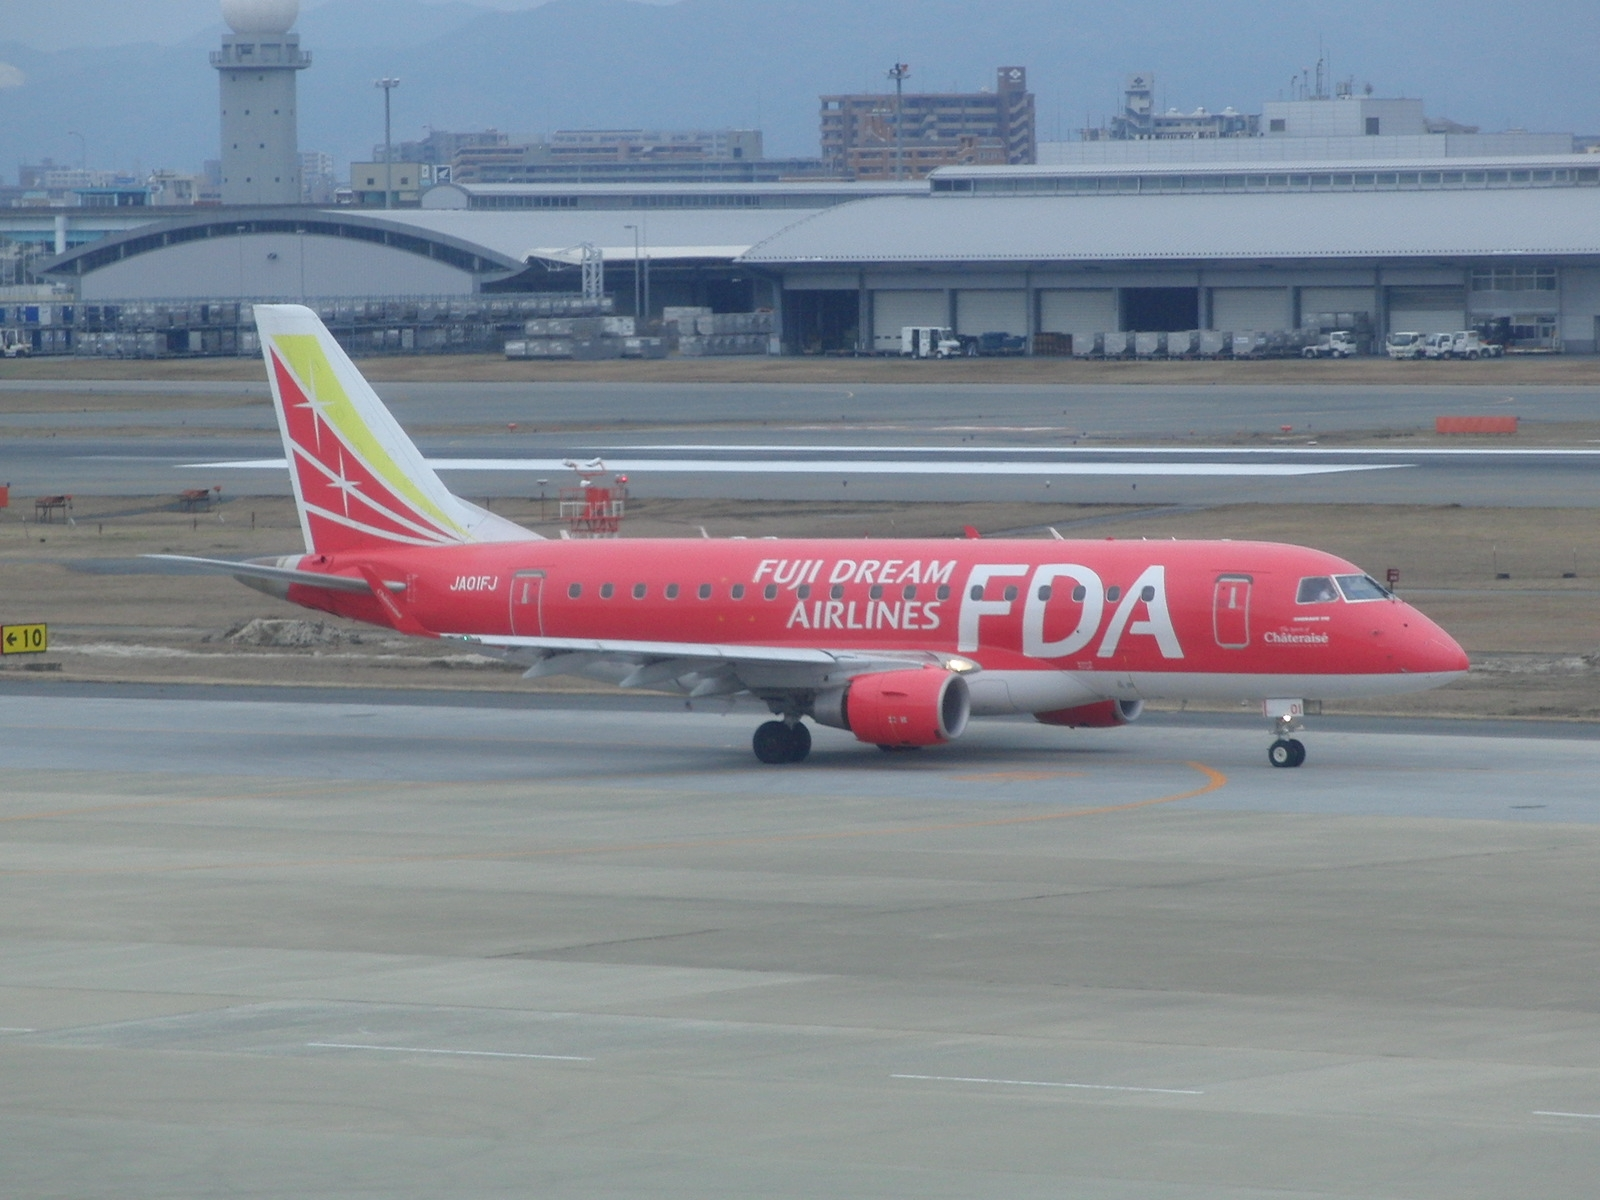 Fuji_dream_airlines